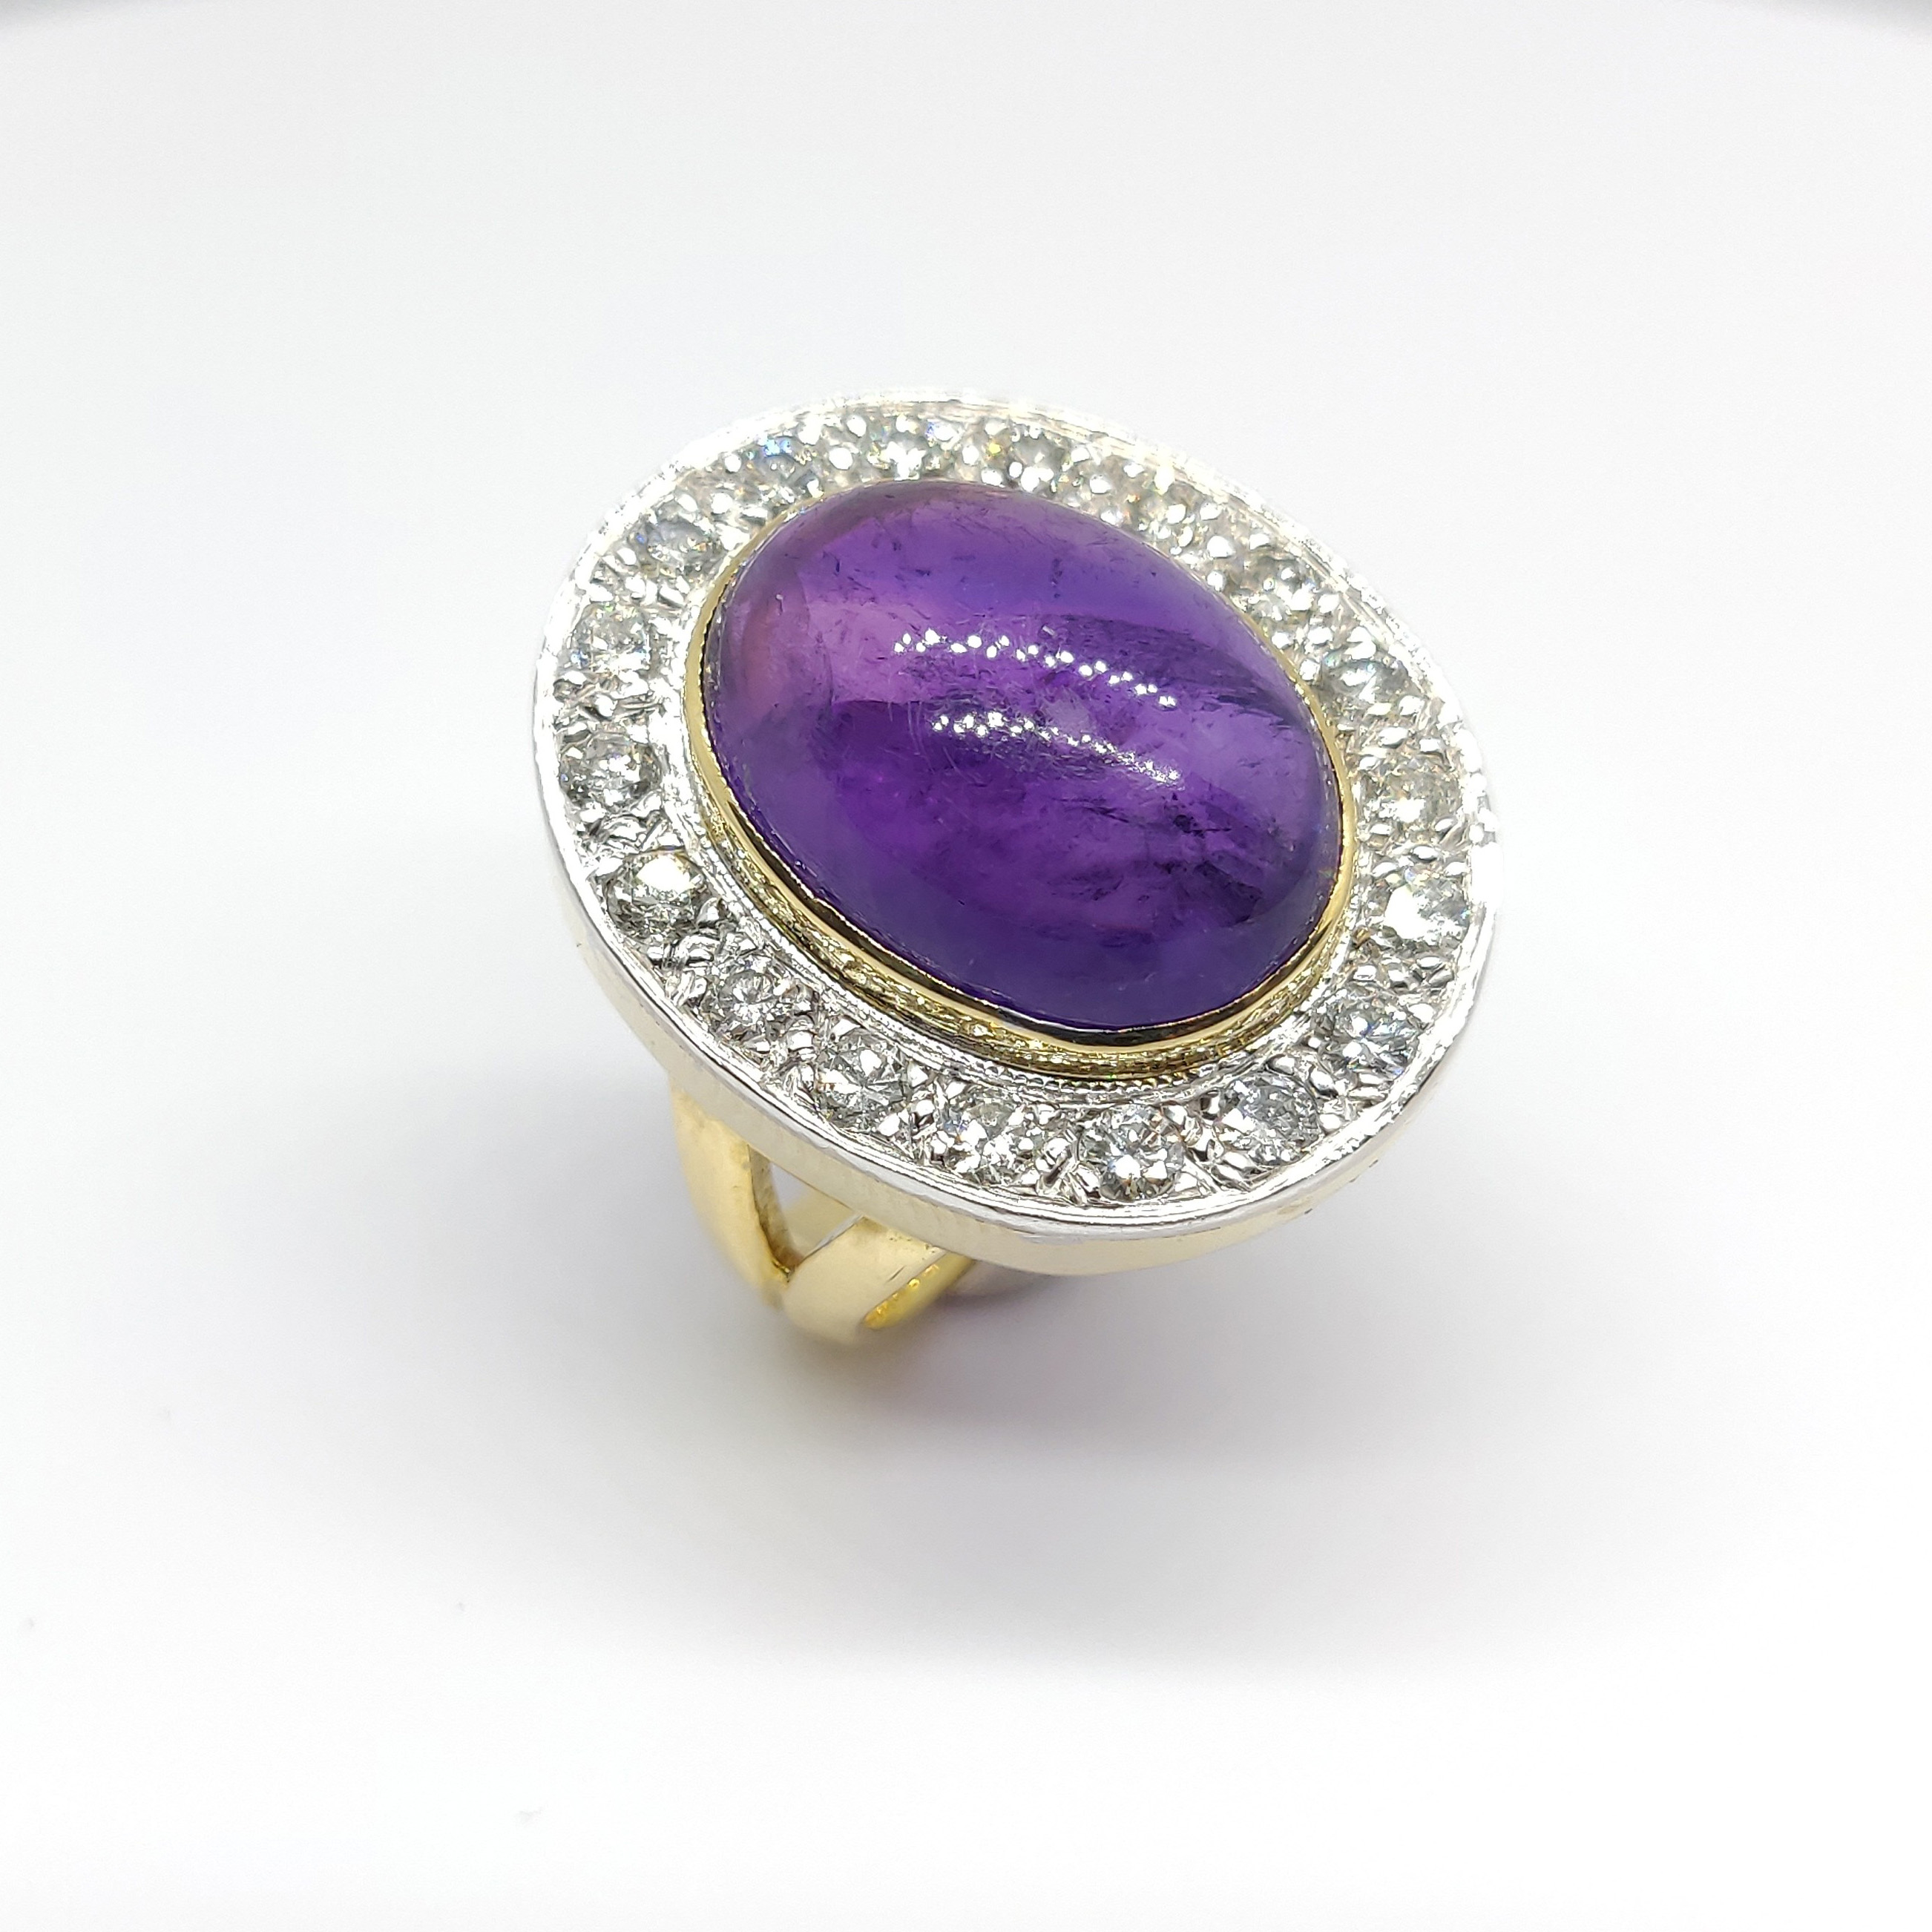 Preowned 18ct Amethyst and Diamond Ring